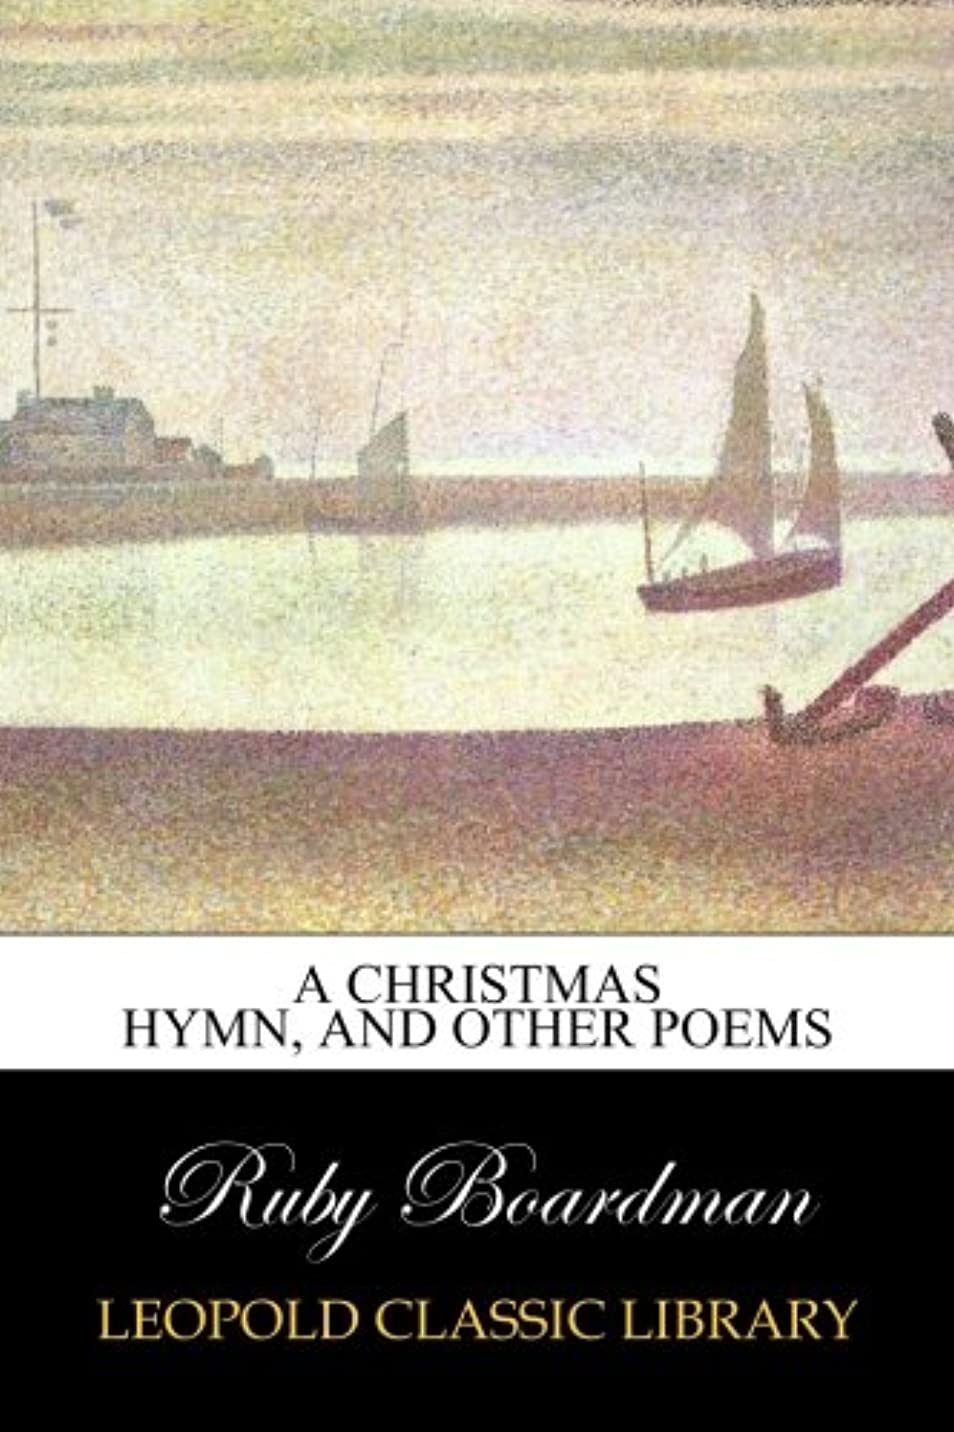 完璧テクスチャーボードA Christmas Hymn, and Other Poems